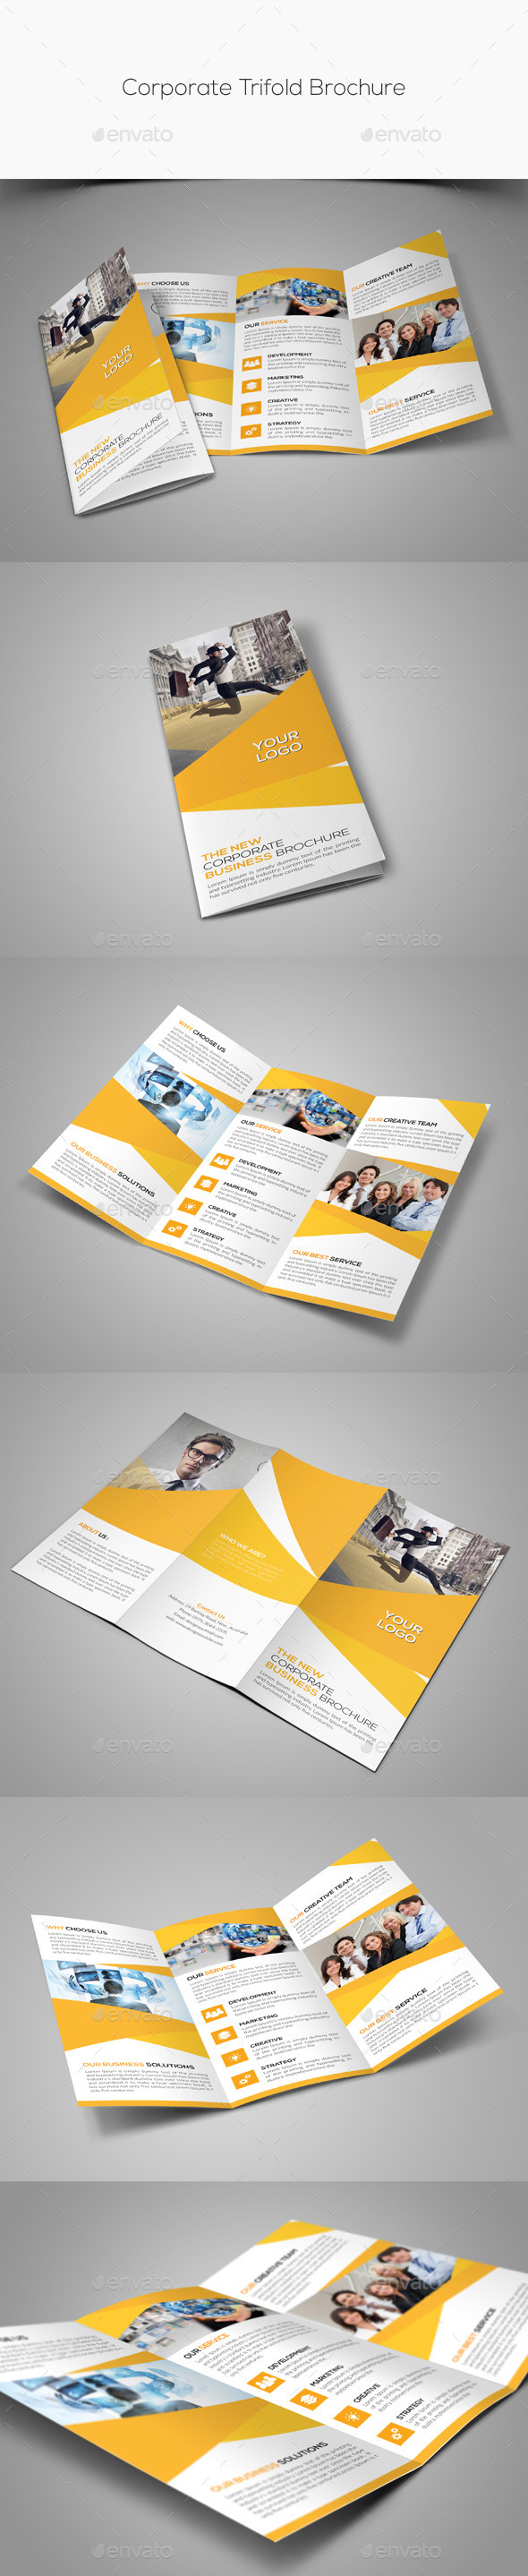 GraphicRiver Corporate Trifold Brochure 11183424